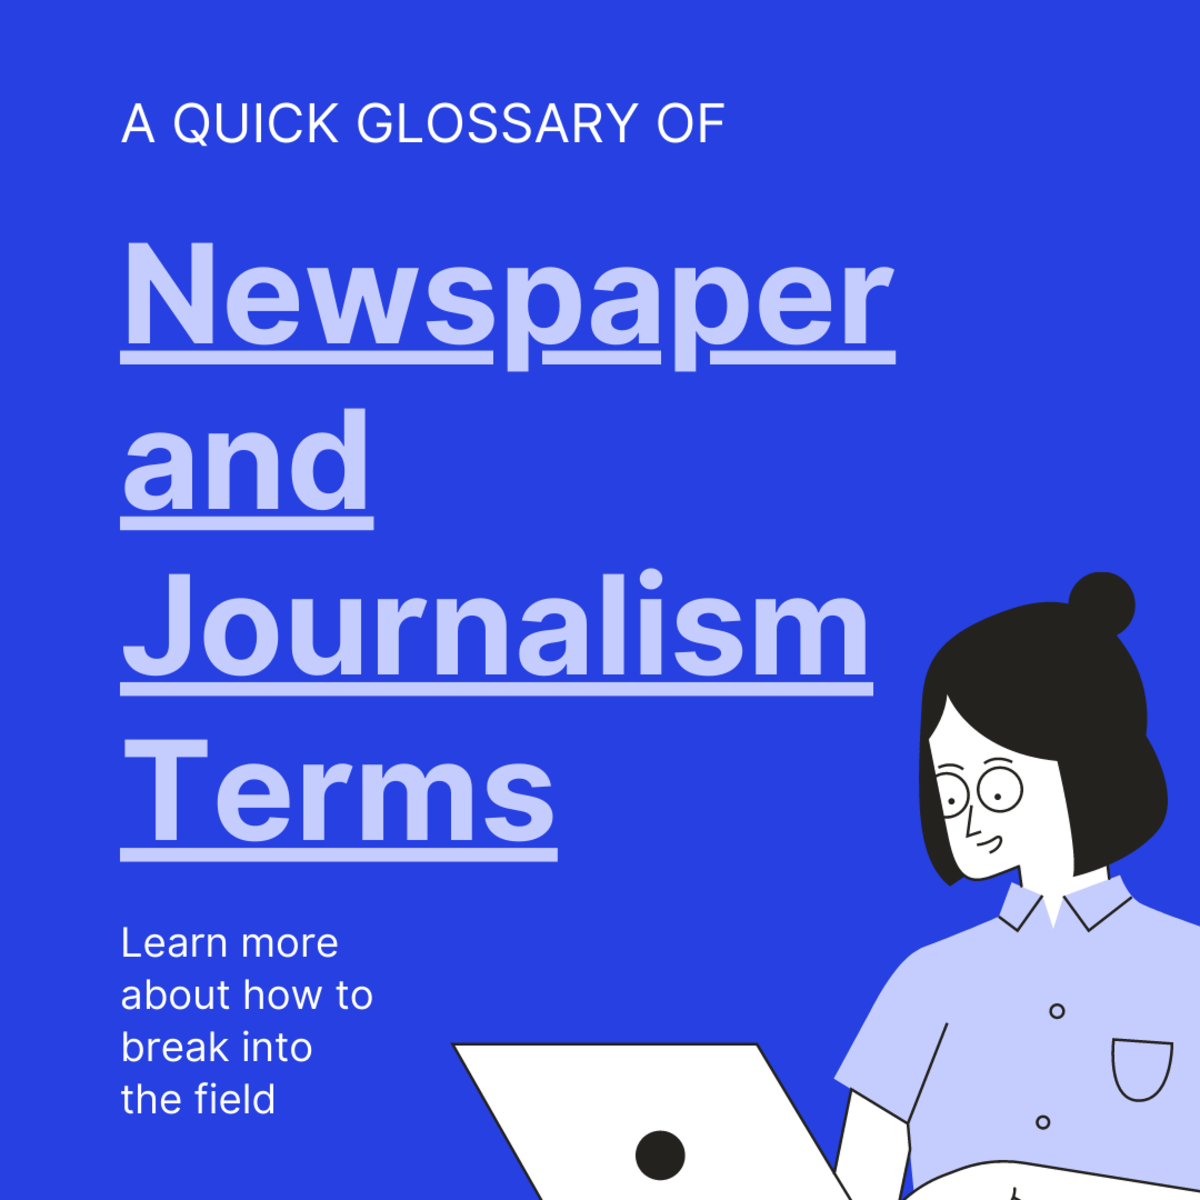 Familiarize yourself with these words related to news and reporting.